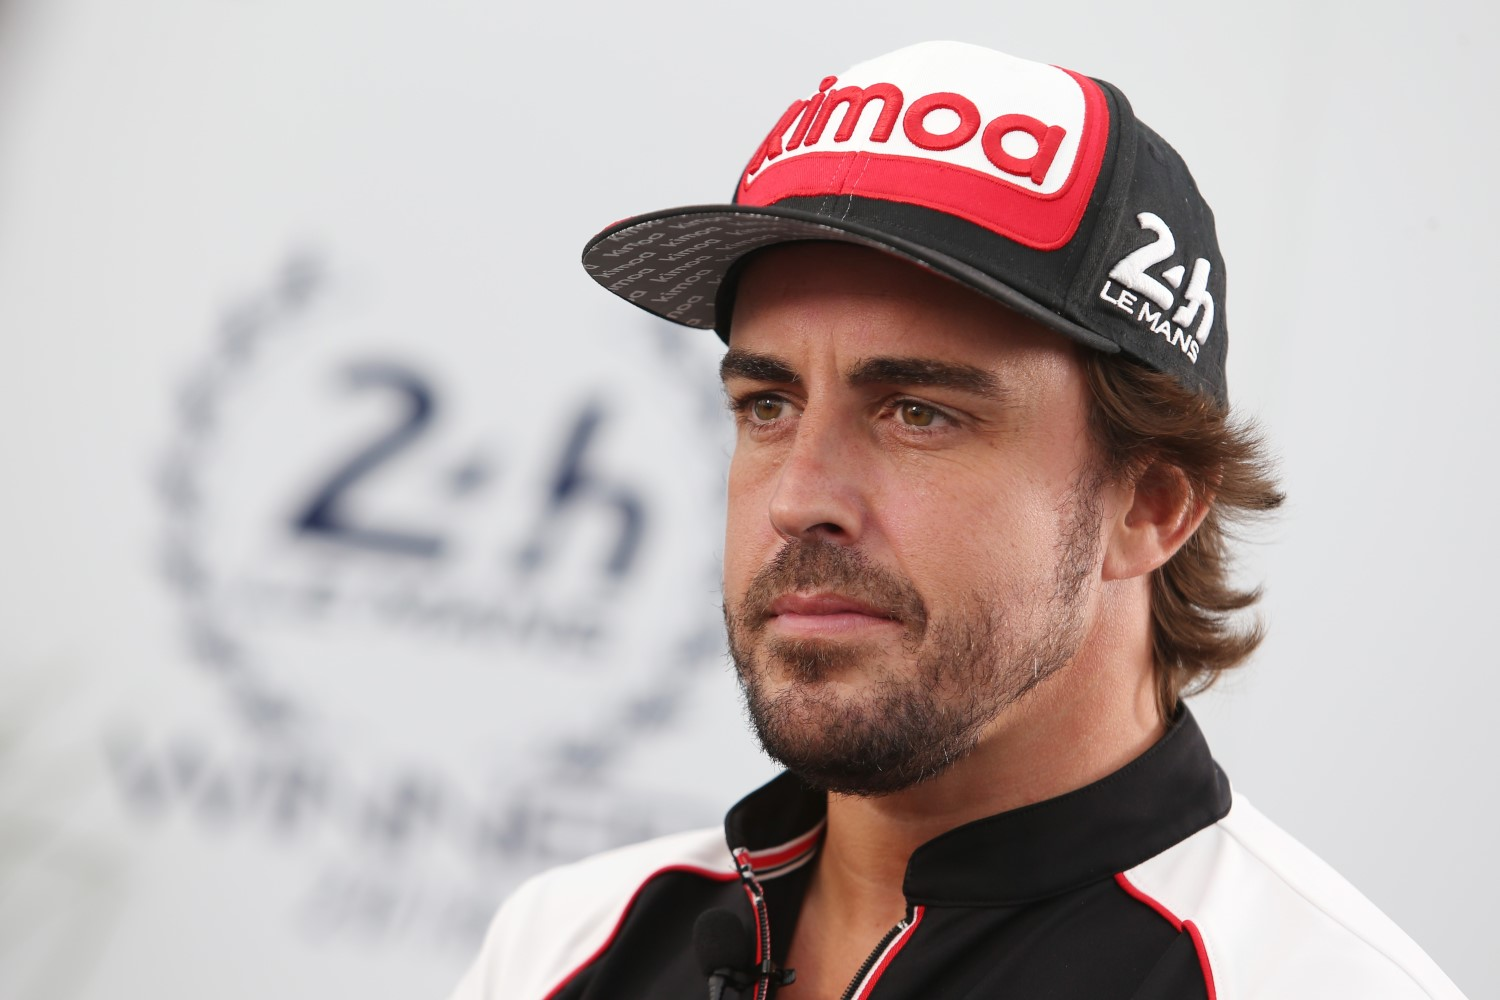 Alonso stares into space trying to figure out his next move